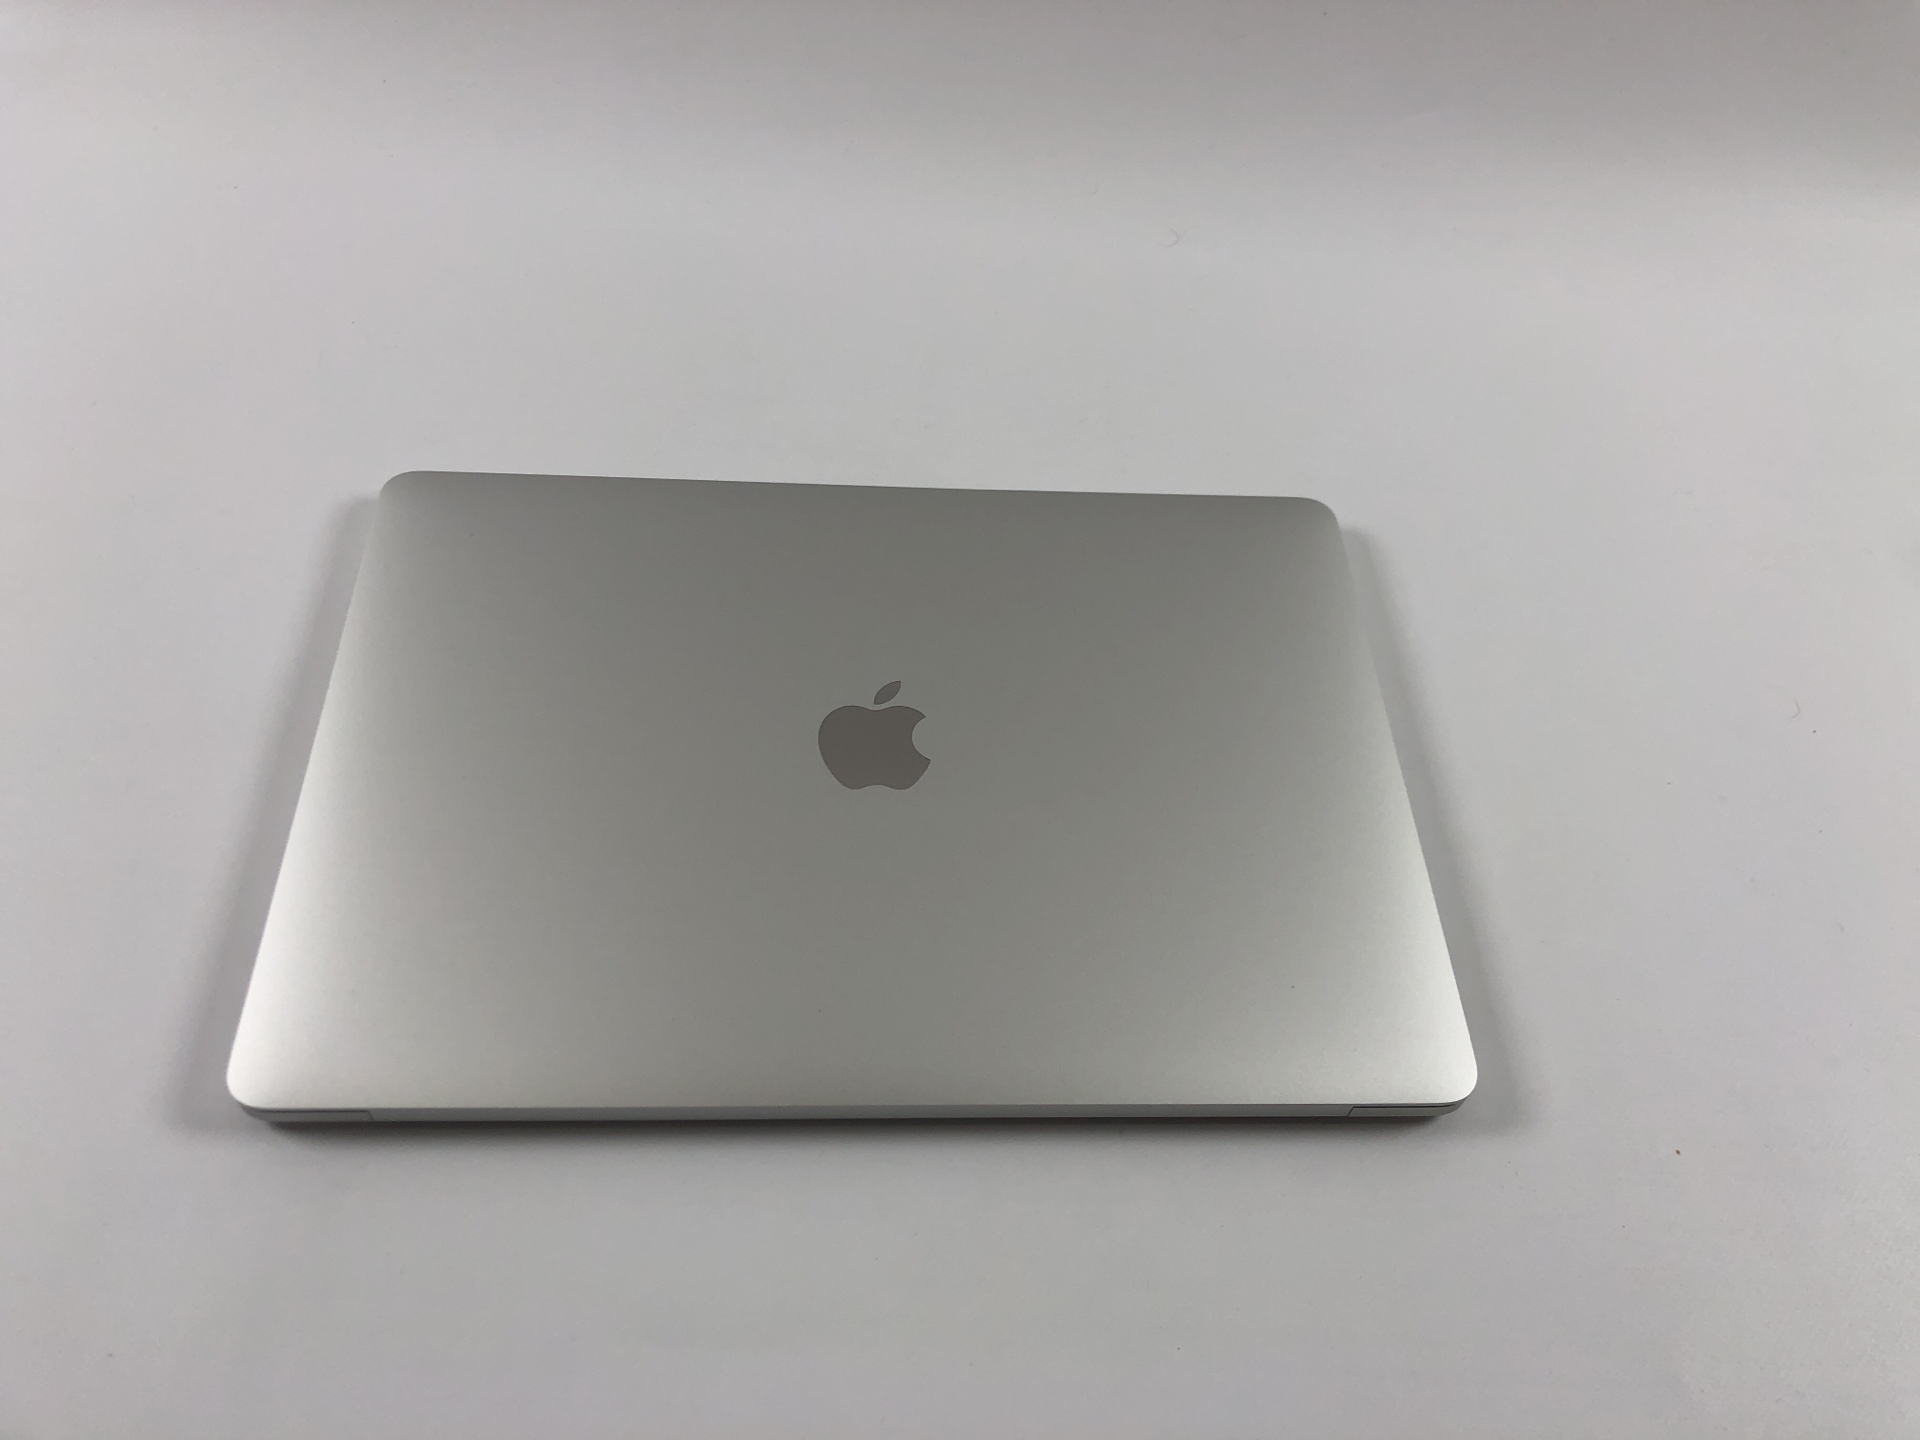 "MacBook Pro 13"" 4TBT Mid 2018 (Intel Quad-Core i5 2.3 GHz 8 GB RAM 512 GB SSD), Silver, Intel Quad-Core i5 2.3 GHz, 8 GB RAM, 512 GB SSD, Kuva 2"